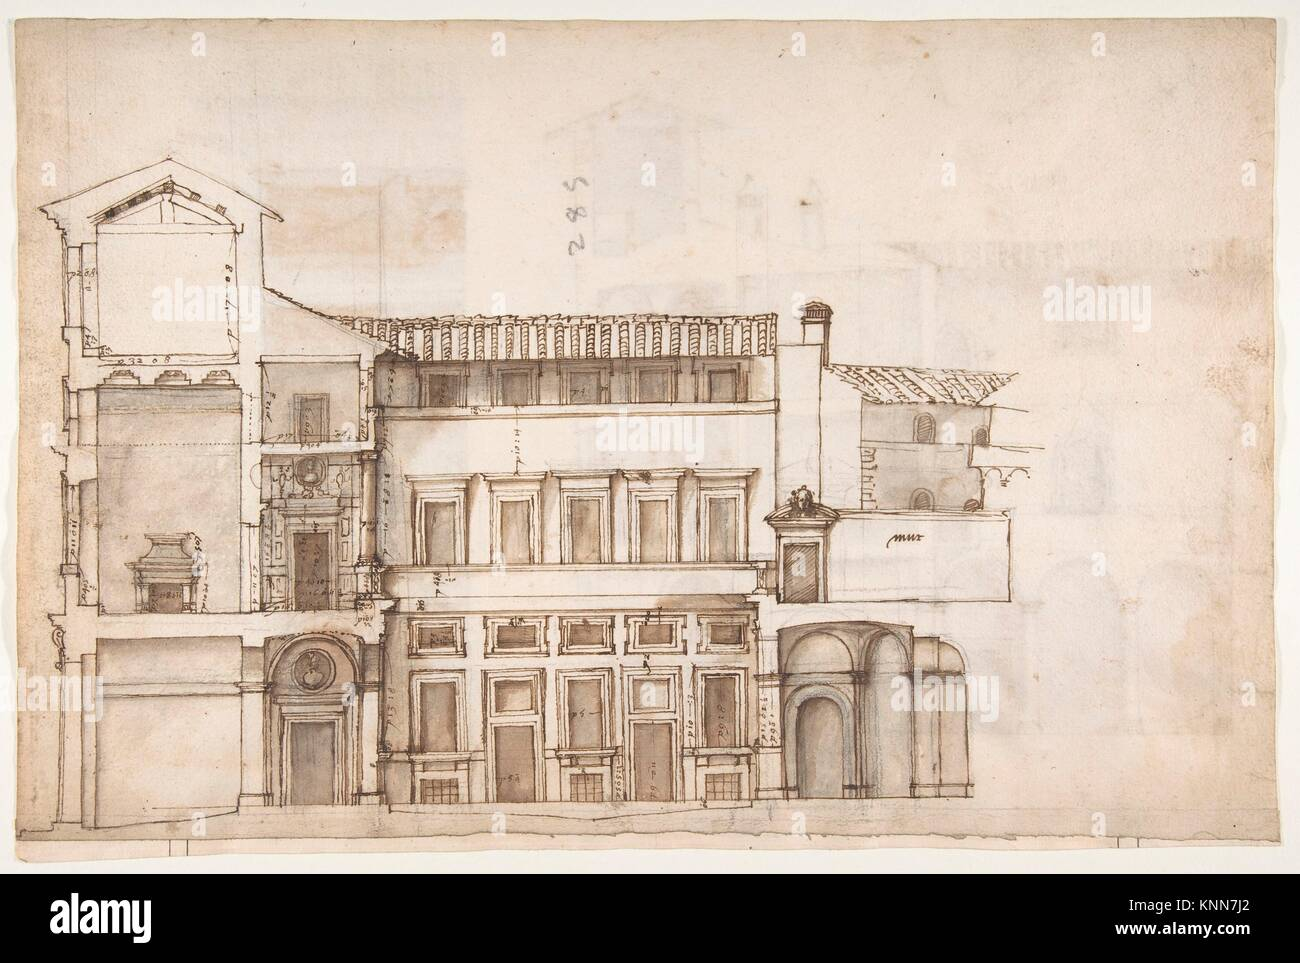 Palazzo Pirro in Rome, section (recto) Palazzo Pirro in Rome, sections; profiles (verso). Draftsman: Drawn by Anonymous, - Stock Image